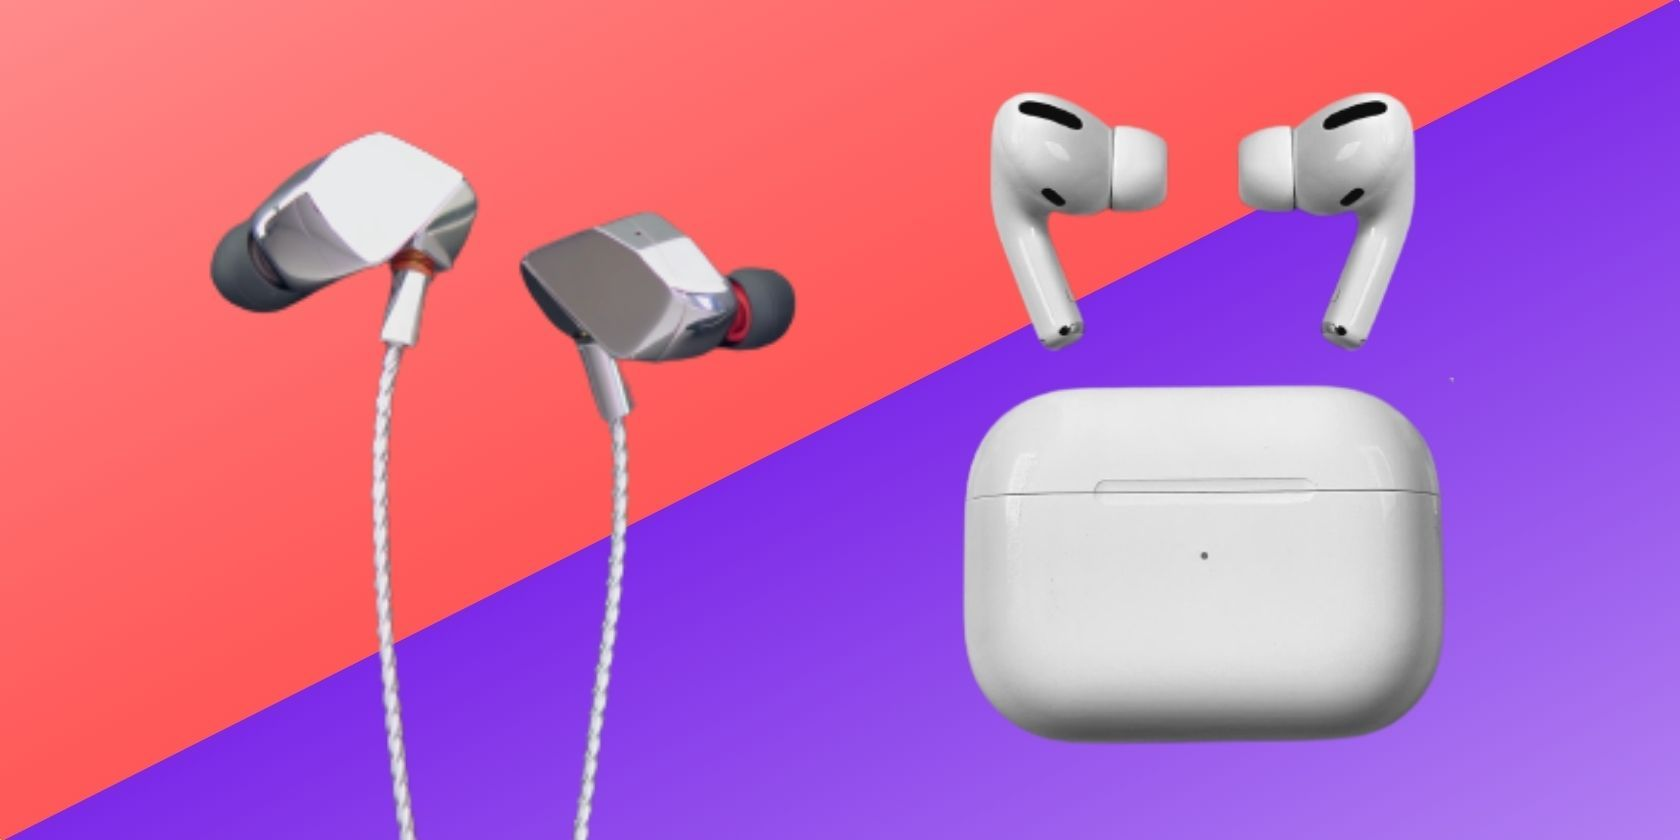 IEMs vs. Earbuds: What Are IEMs? Are They Better Than Earbuds?